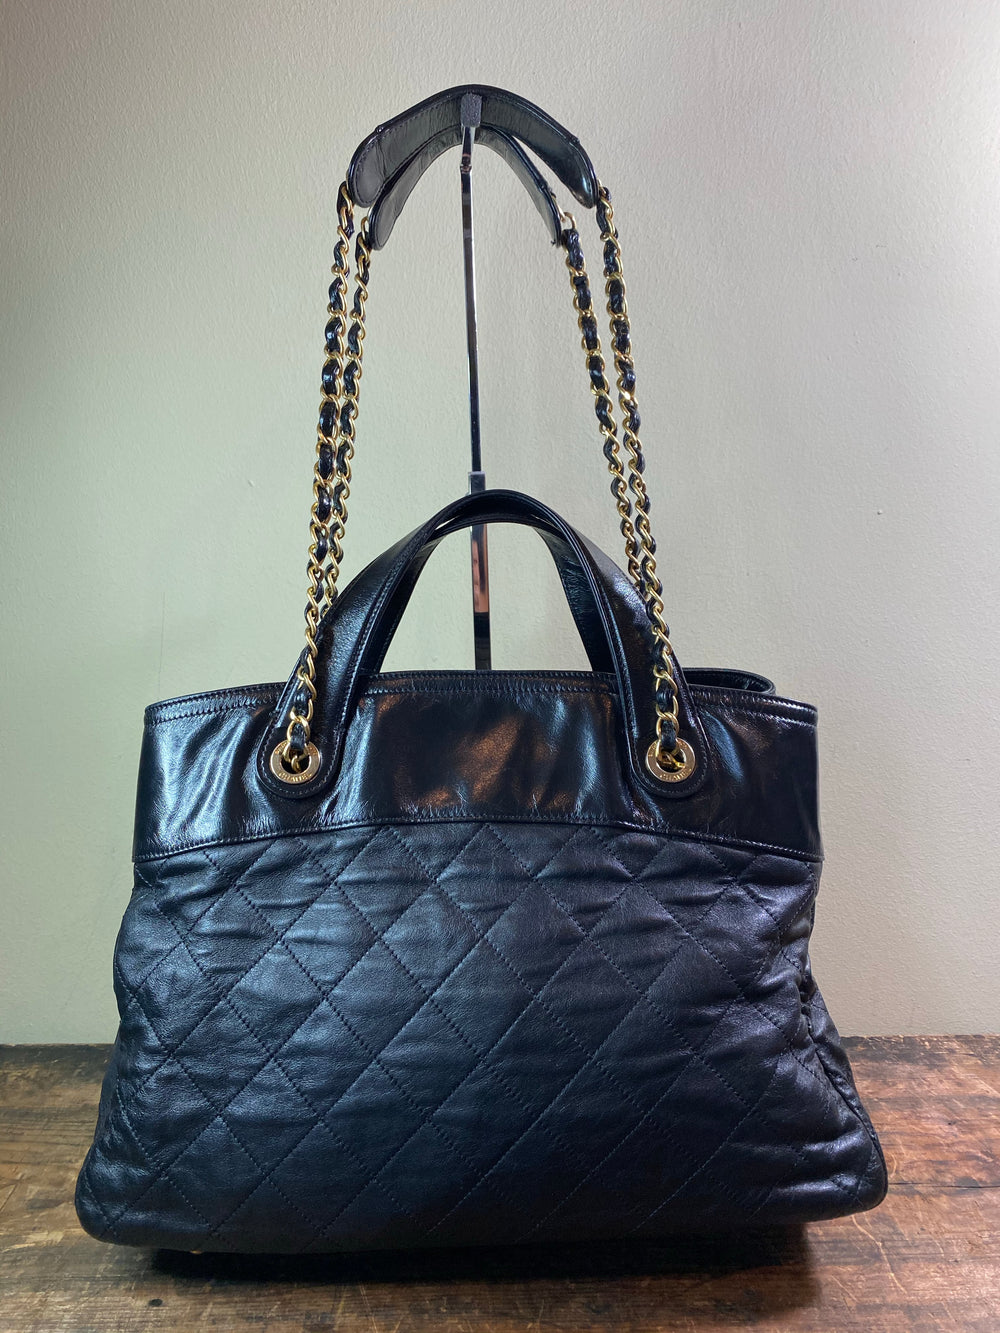 Chanel Two Way Leather